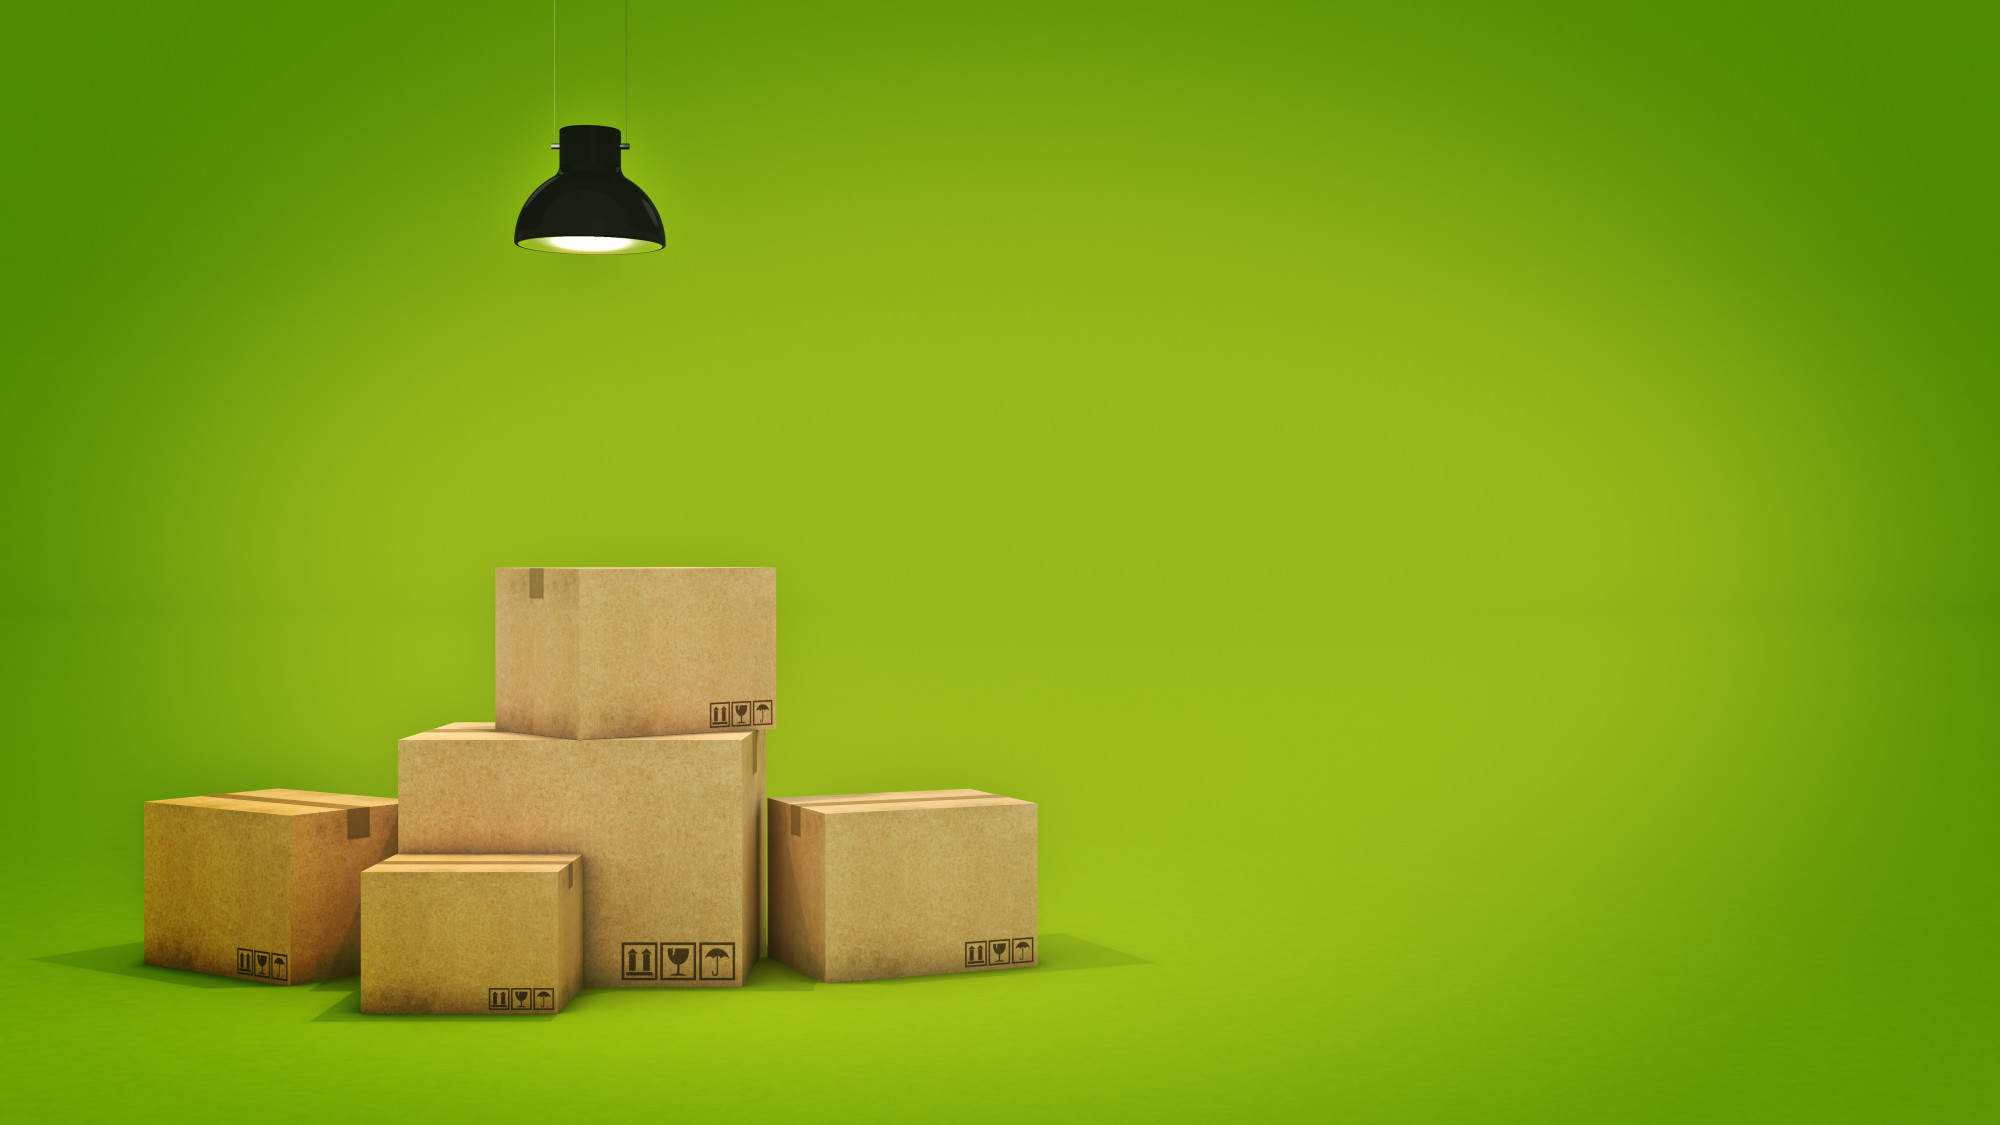 moving boxes on green background